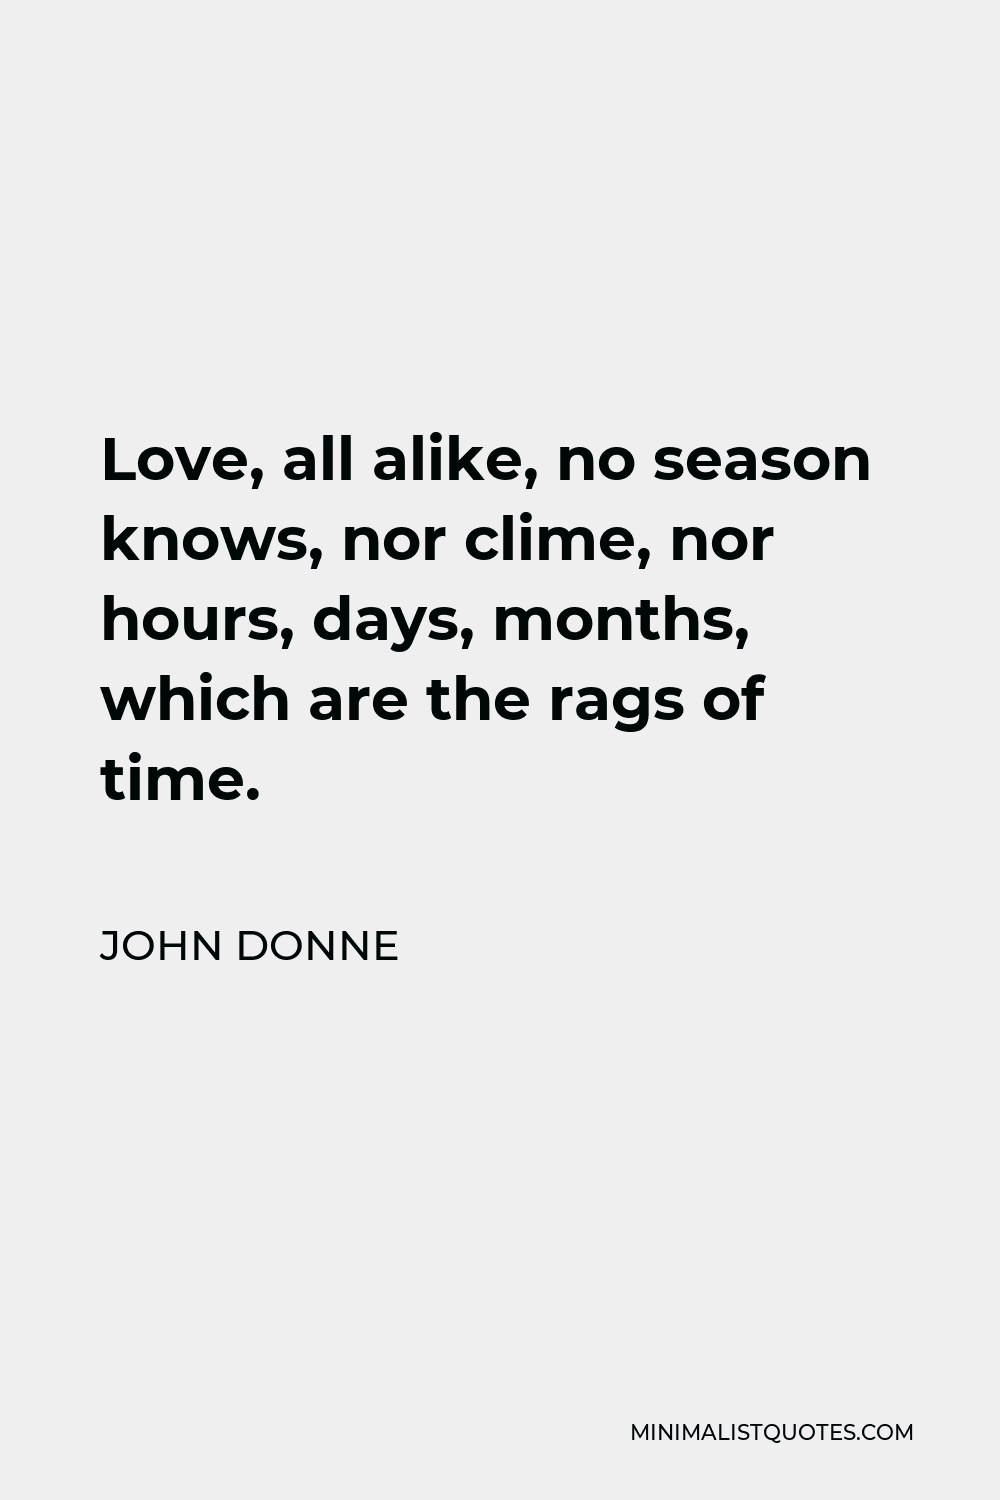 John Donne Quote - Love, all alike, no season knows, nor clime, nor hours, days, months, which are the rags of time.